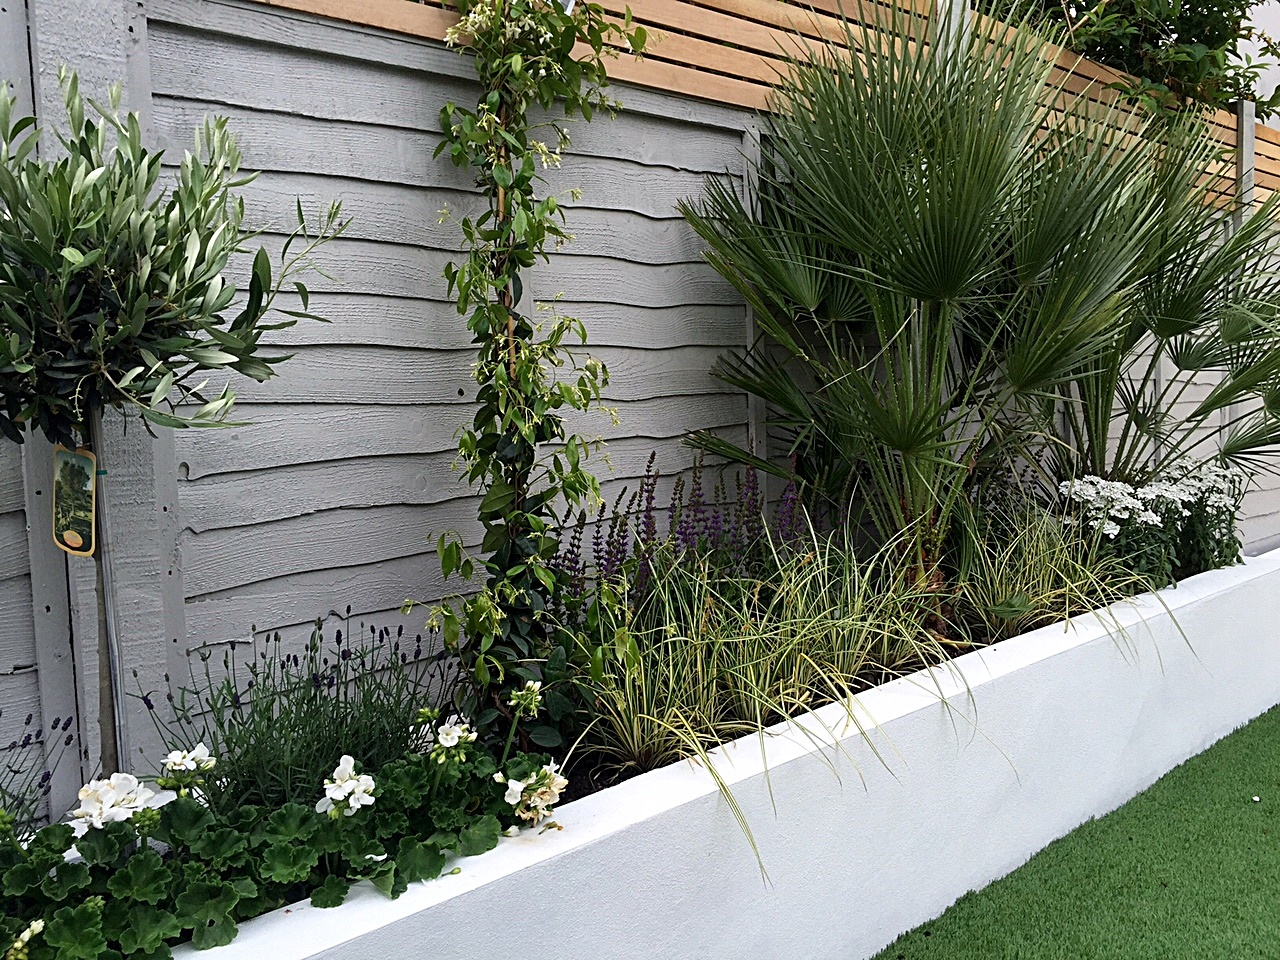 Artificial london garden design for Small garden design uk